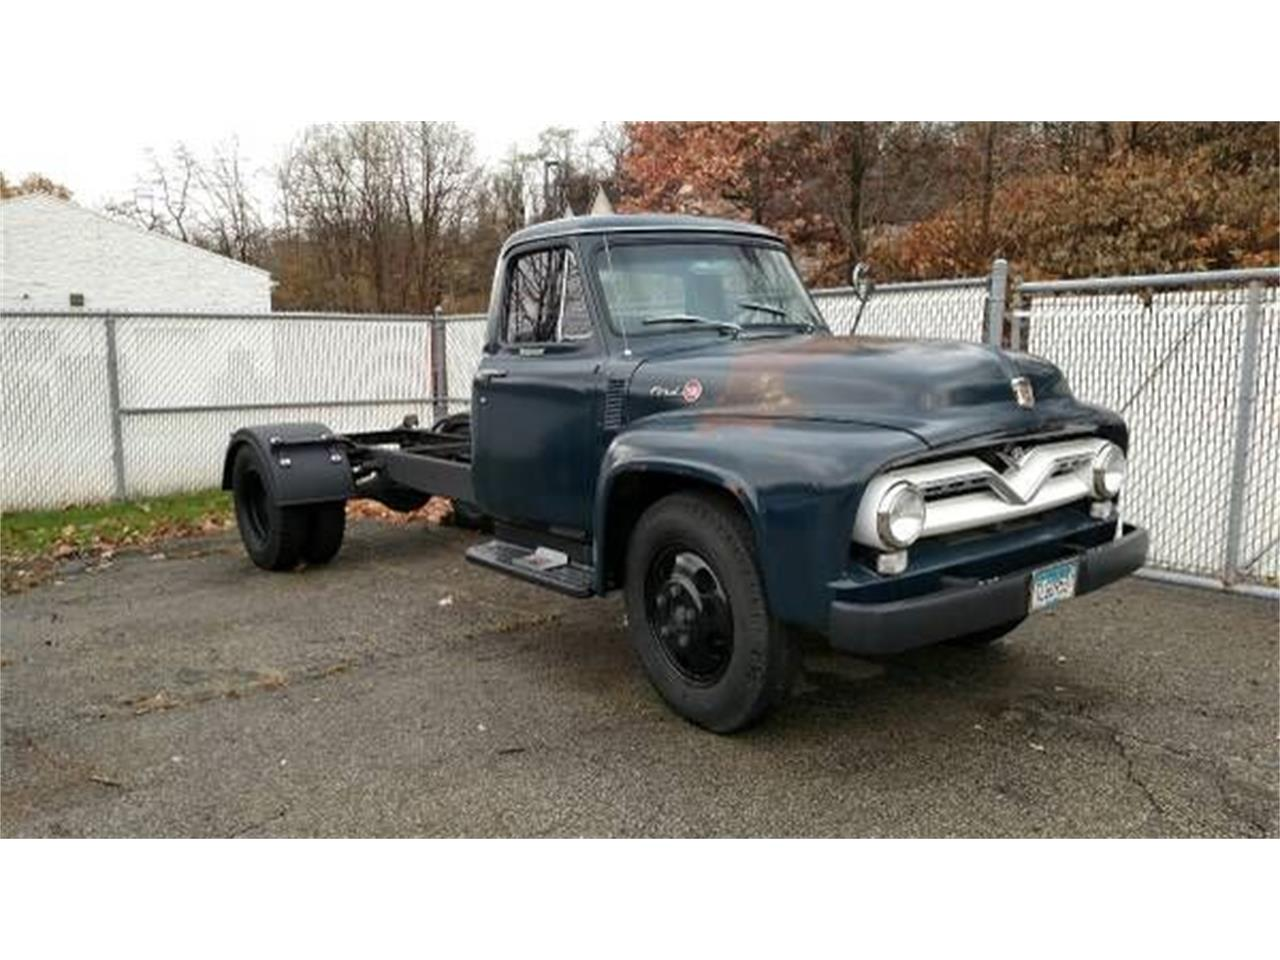 For Sale: 1955 Ford F600 in Cadillac, Michigan on